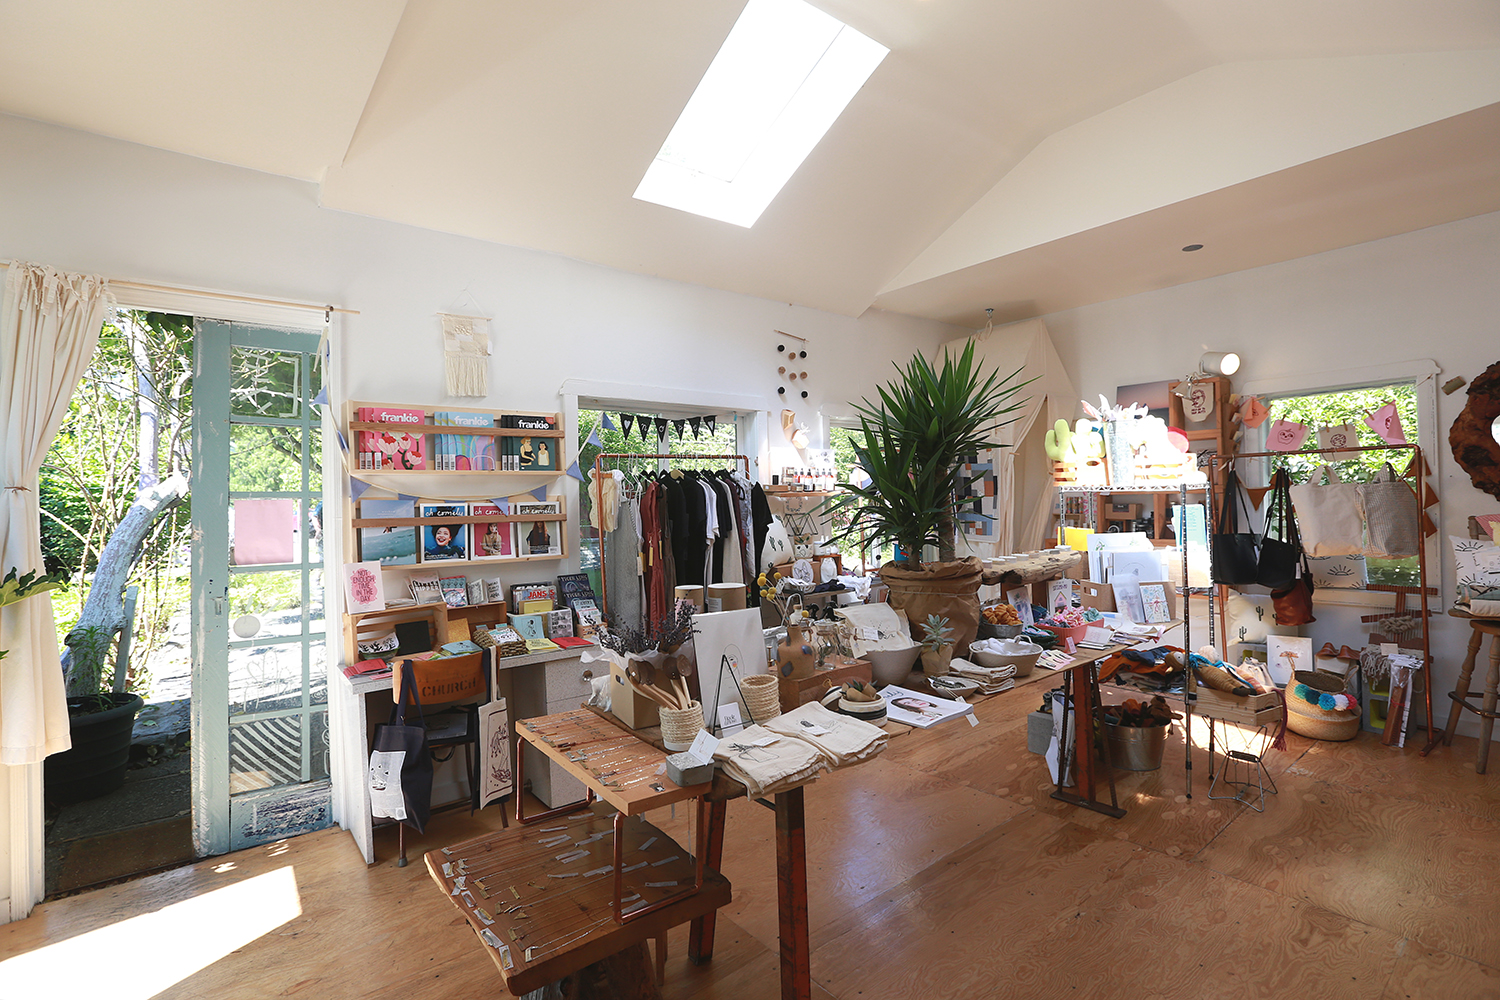 Find Issue 2: The Morning at Merge on Vancouver Island:   305B Campbell Street, Tofino, BC.